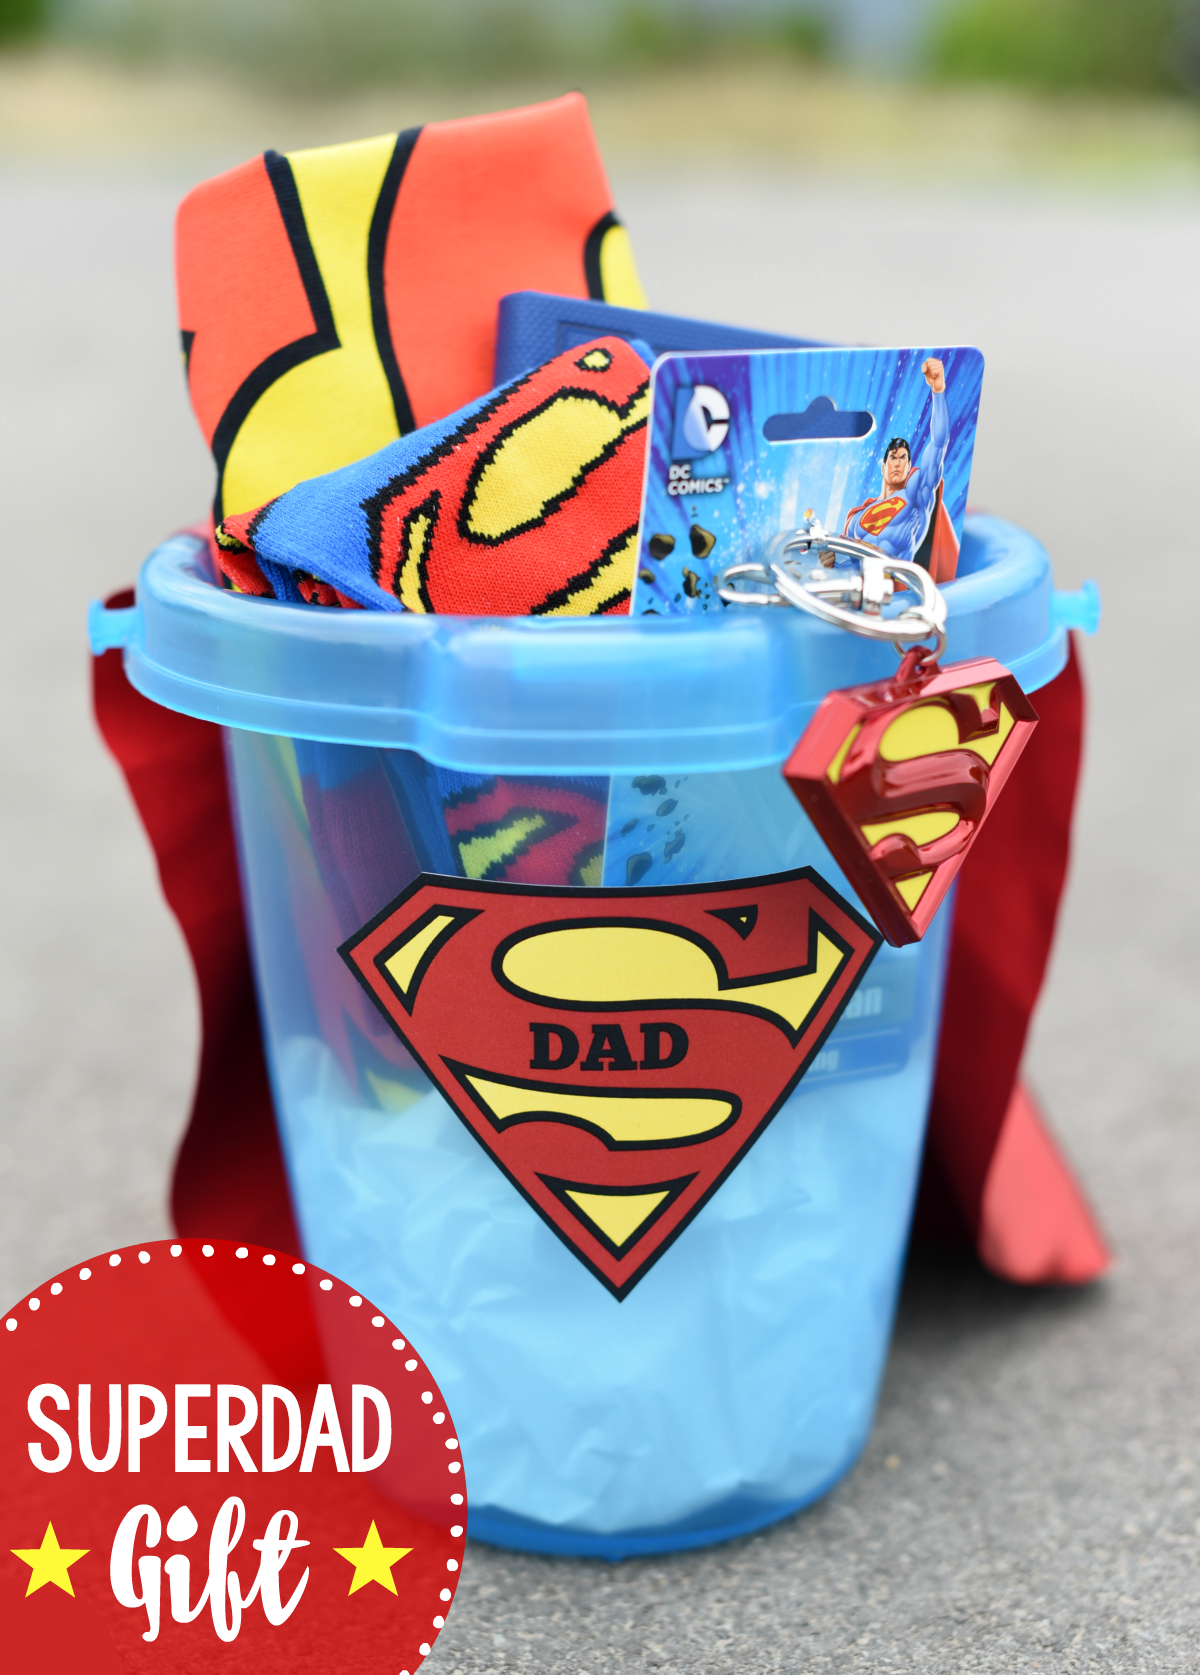 Superhero Fathers Day Gift Basket-Fill a basket (or bucket) with Superman themed items, add a cute Superdad tag and a cape to the back of the bucket and you have a great Superdad gift! #fathersdaygifts #fathersday #fathersdayideas #dad #dadgifts #gifts #giftideas #giftsfordad #superman #superdad #superhero